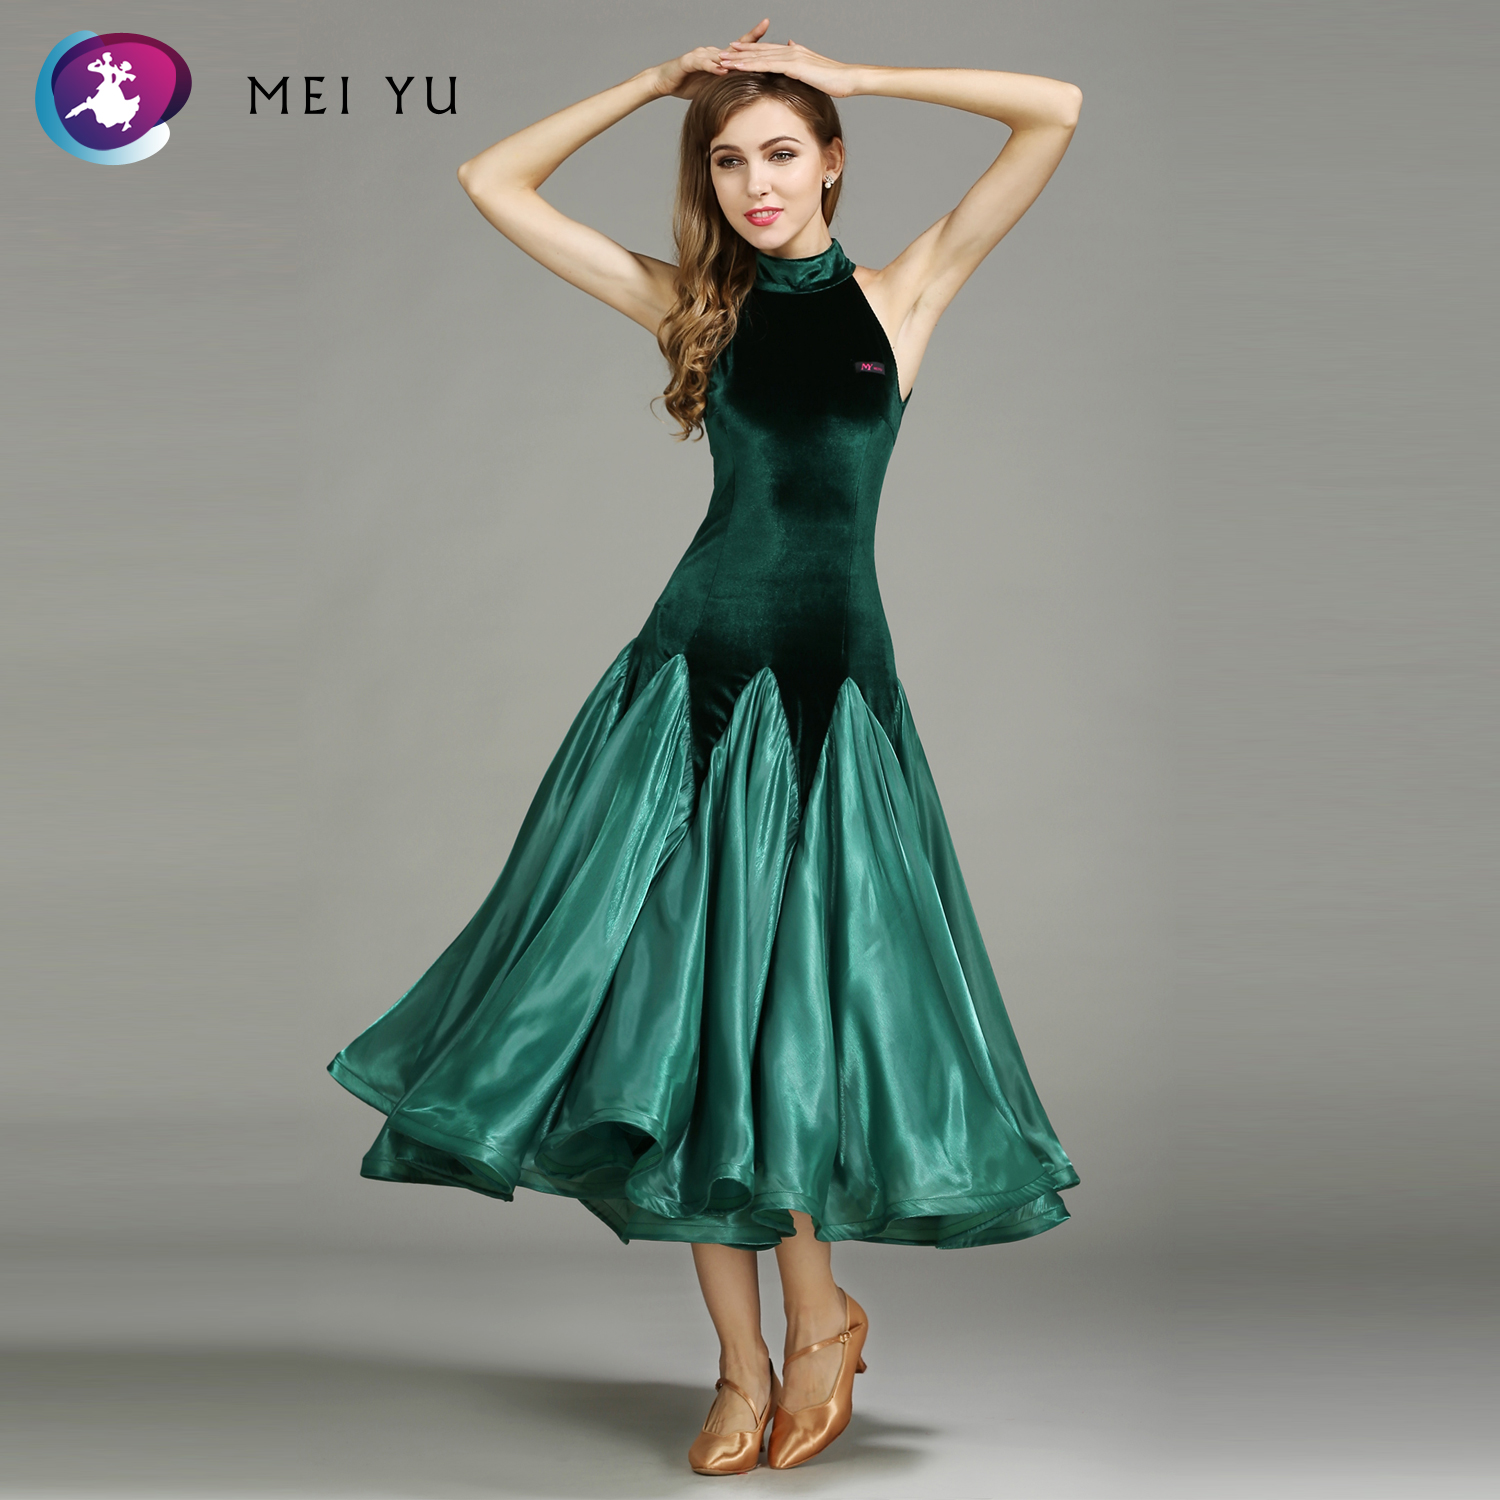 Stage & Dance Wear Mei Yu My758 Modern Dance Costume Women Lady Adult Waltzing Tango Ruffled Dancing Dress Ballroom Costume Evening Party Dress